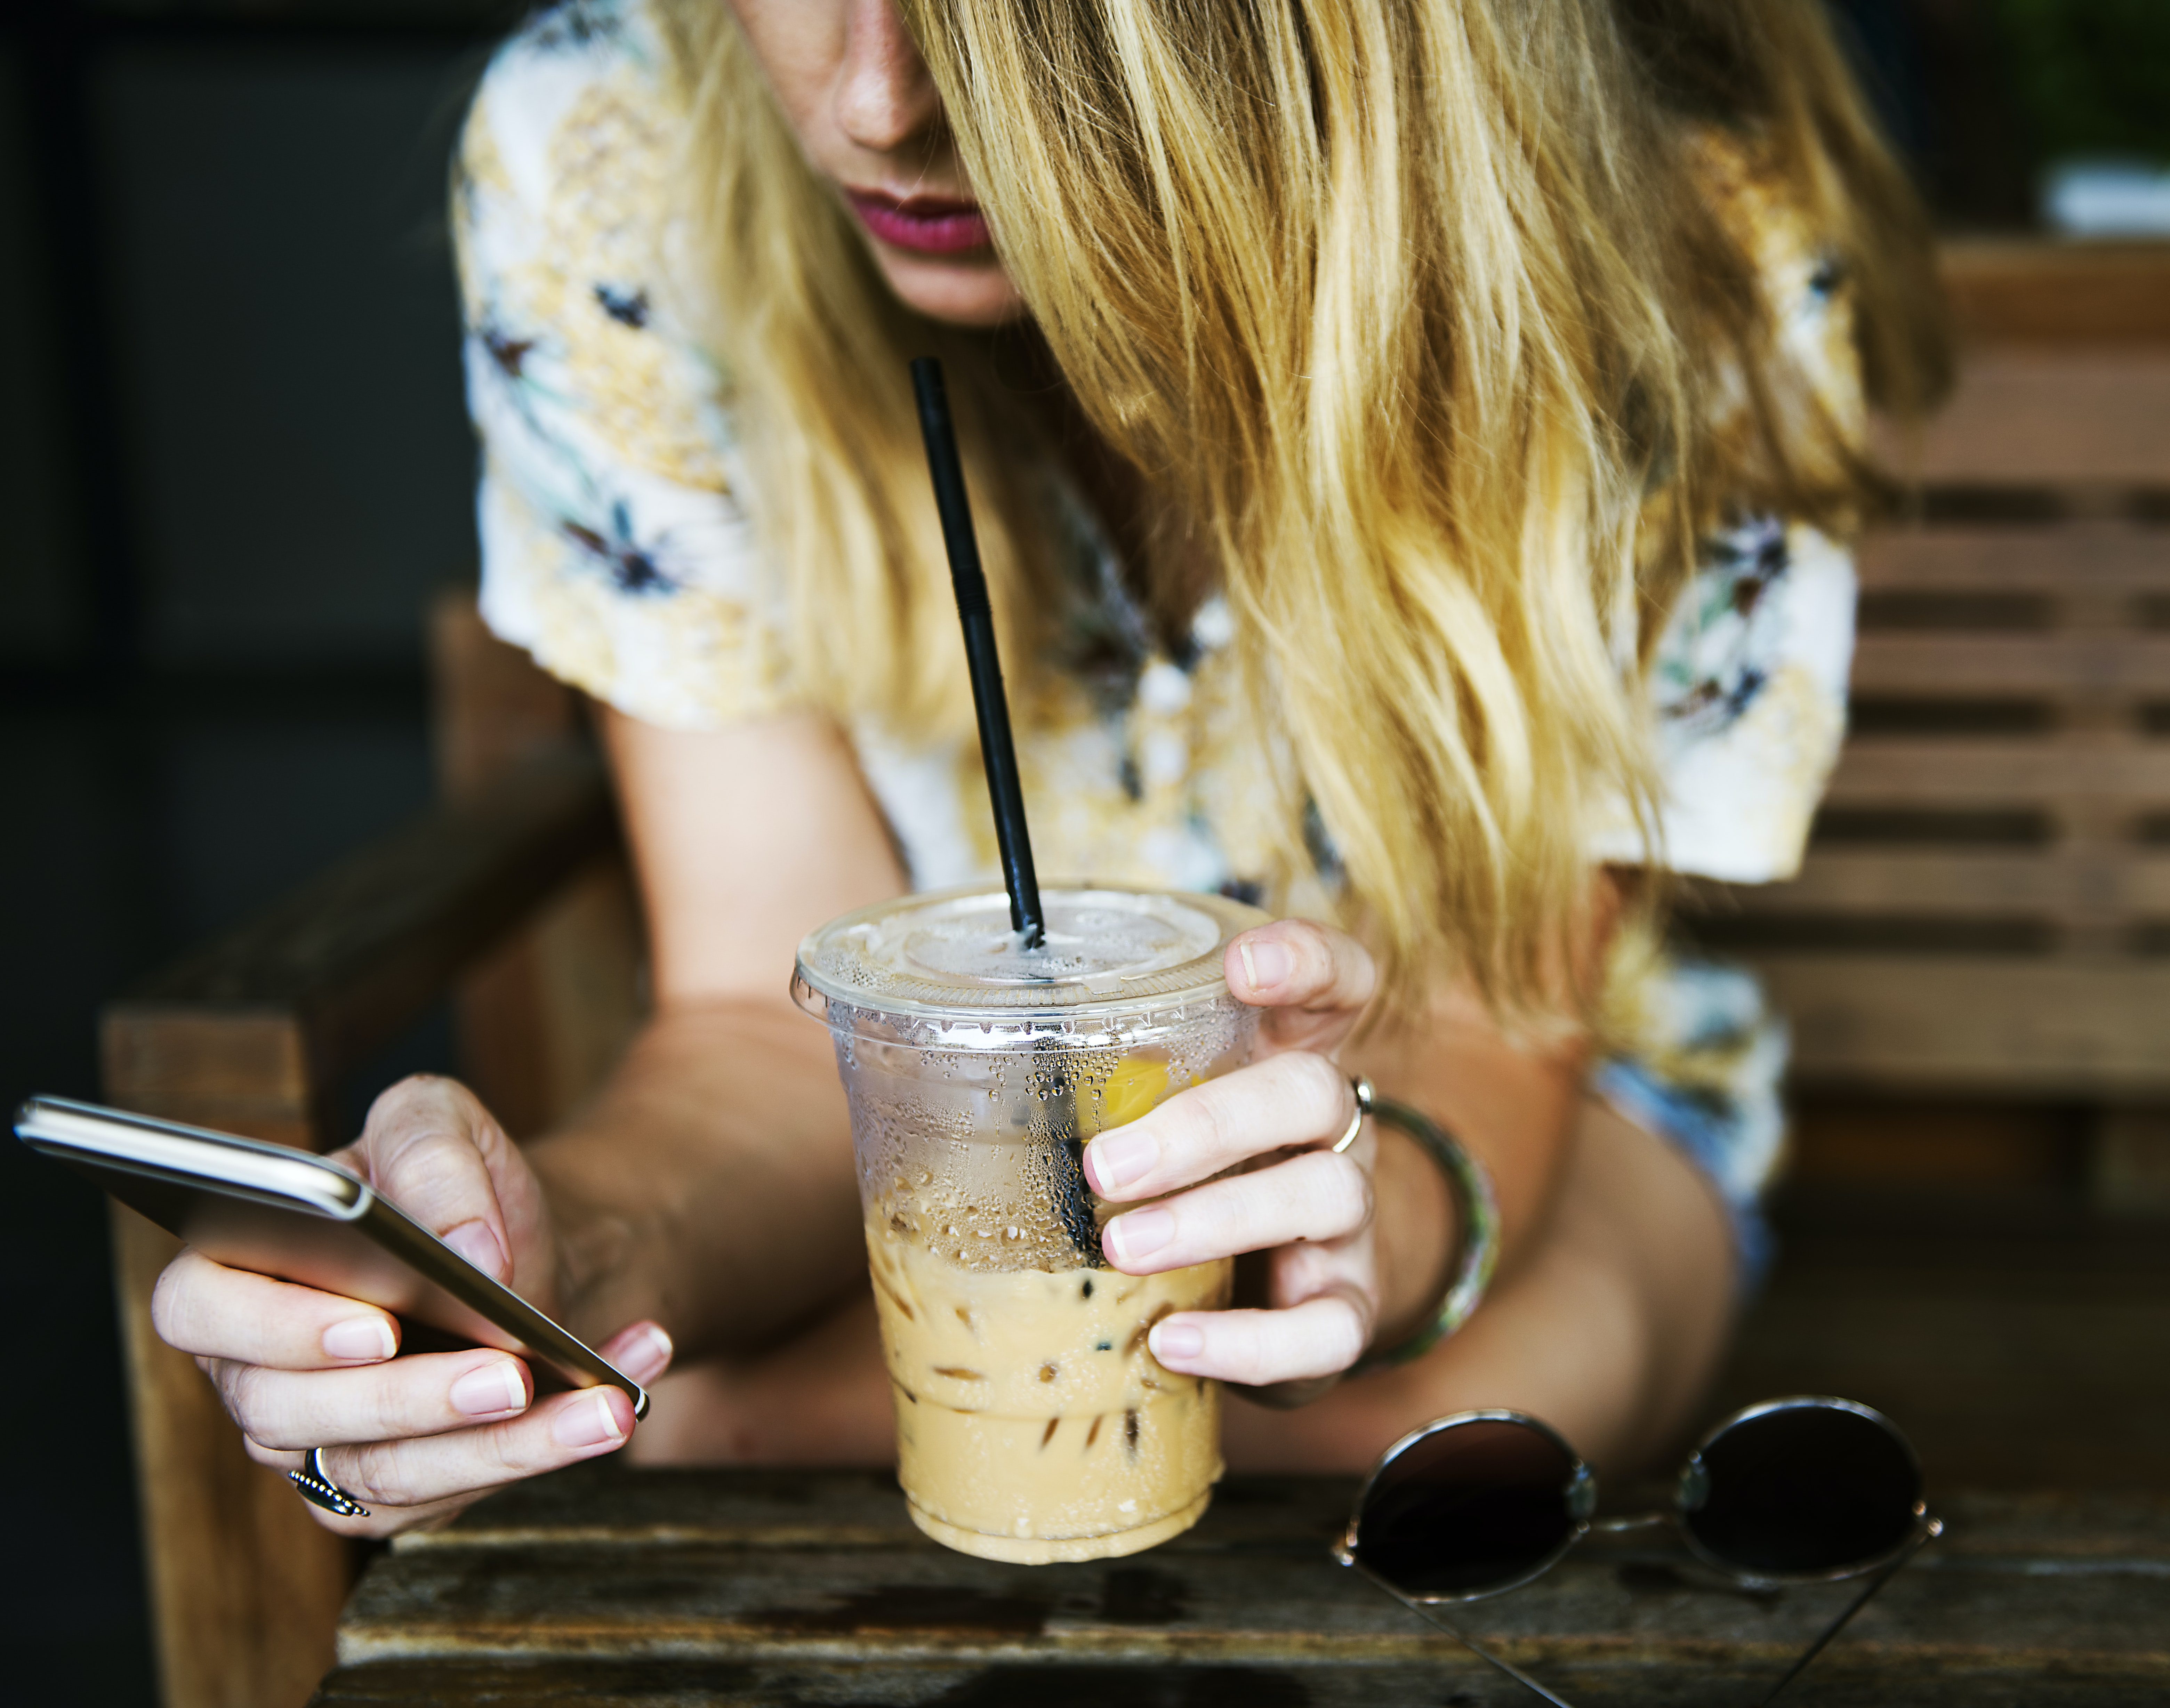 A blonde woman drinking iced coffee while using an iPhone